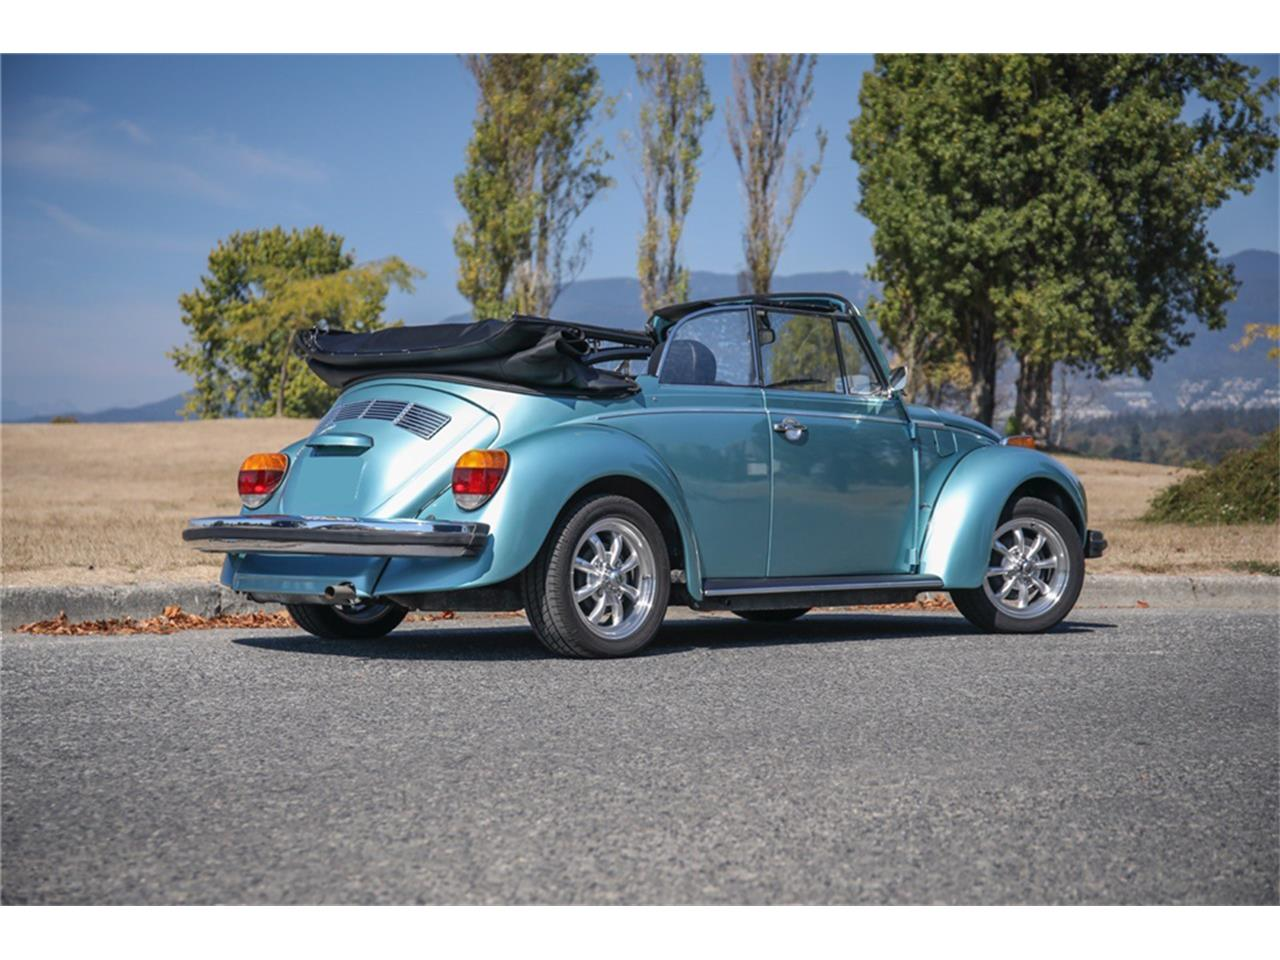 Large Picture of 1979 Volkswagen Beetle located in Las Vegas Nevada Auction Vehicle Offered by Barrett-Jackson - OI5U